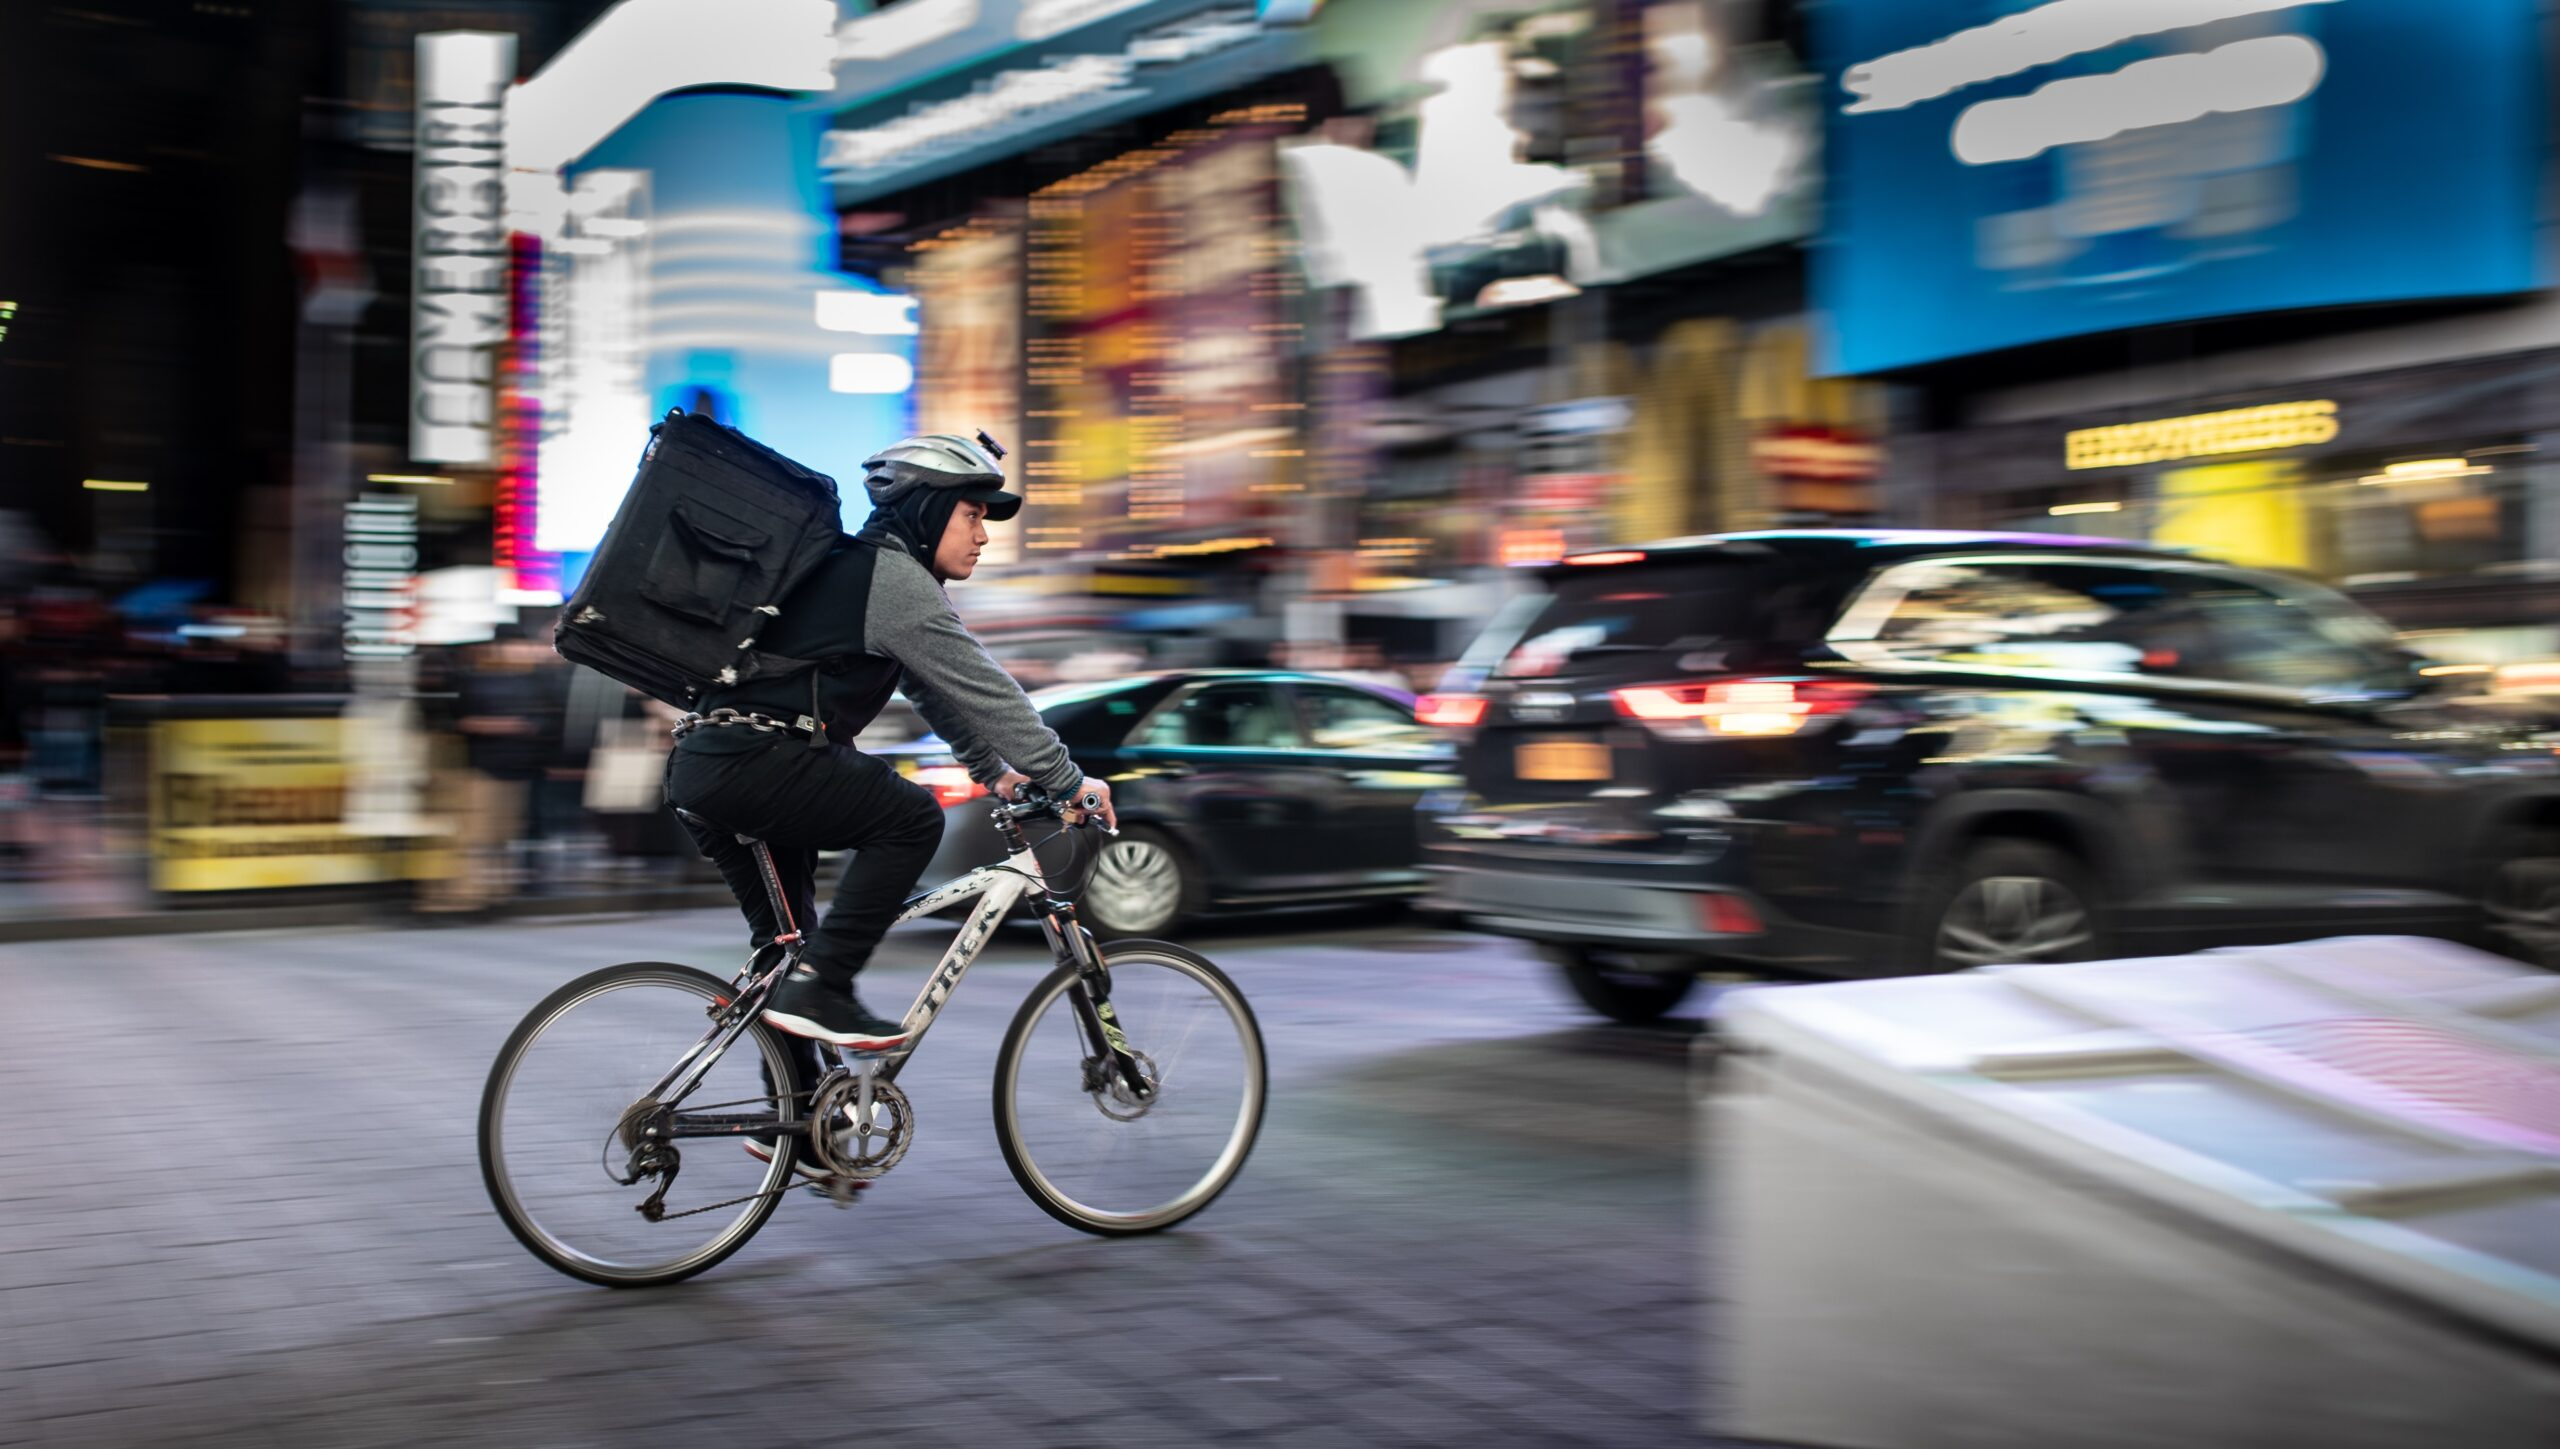 Food delivery courier on a bicycle